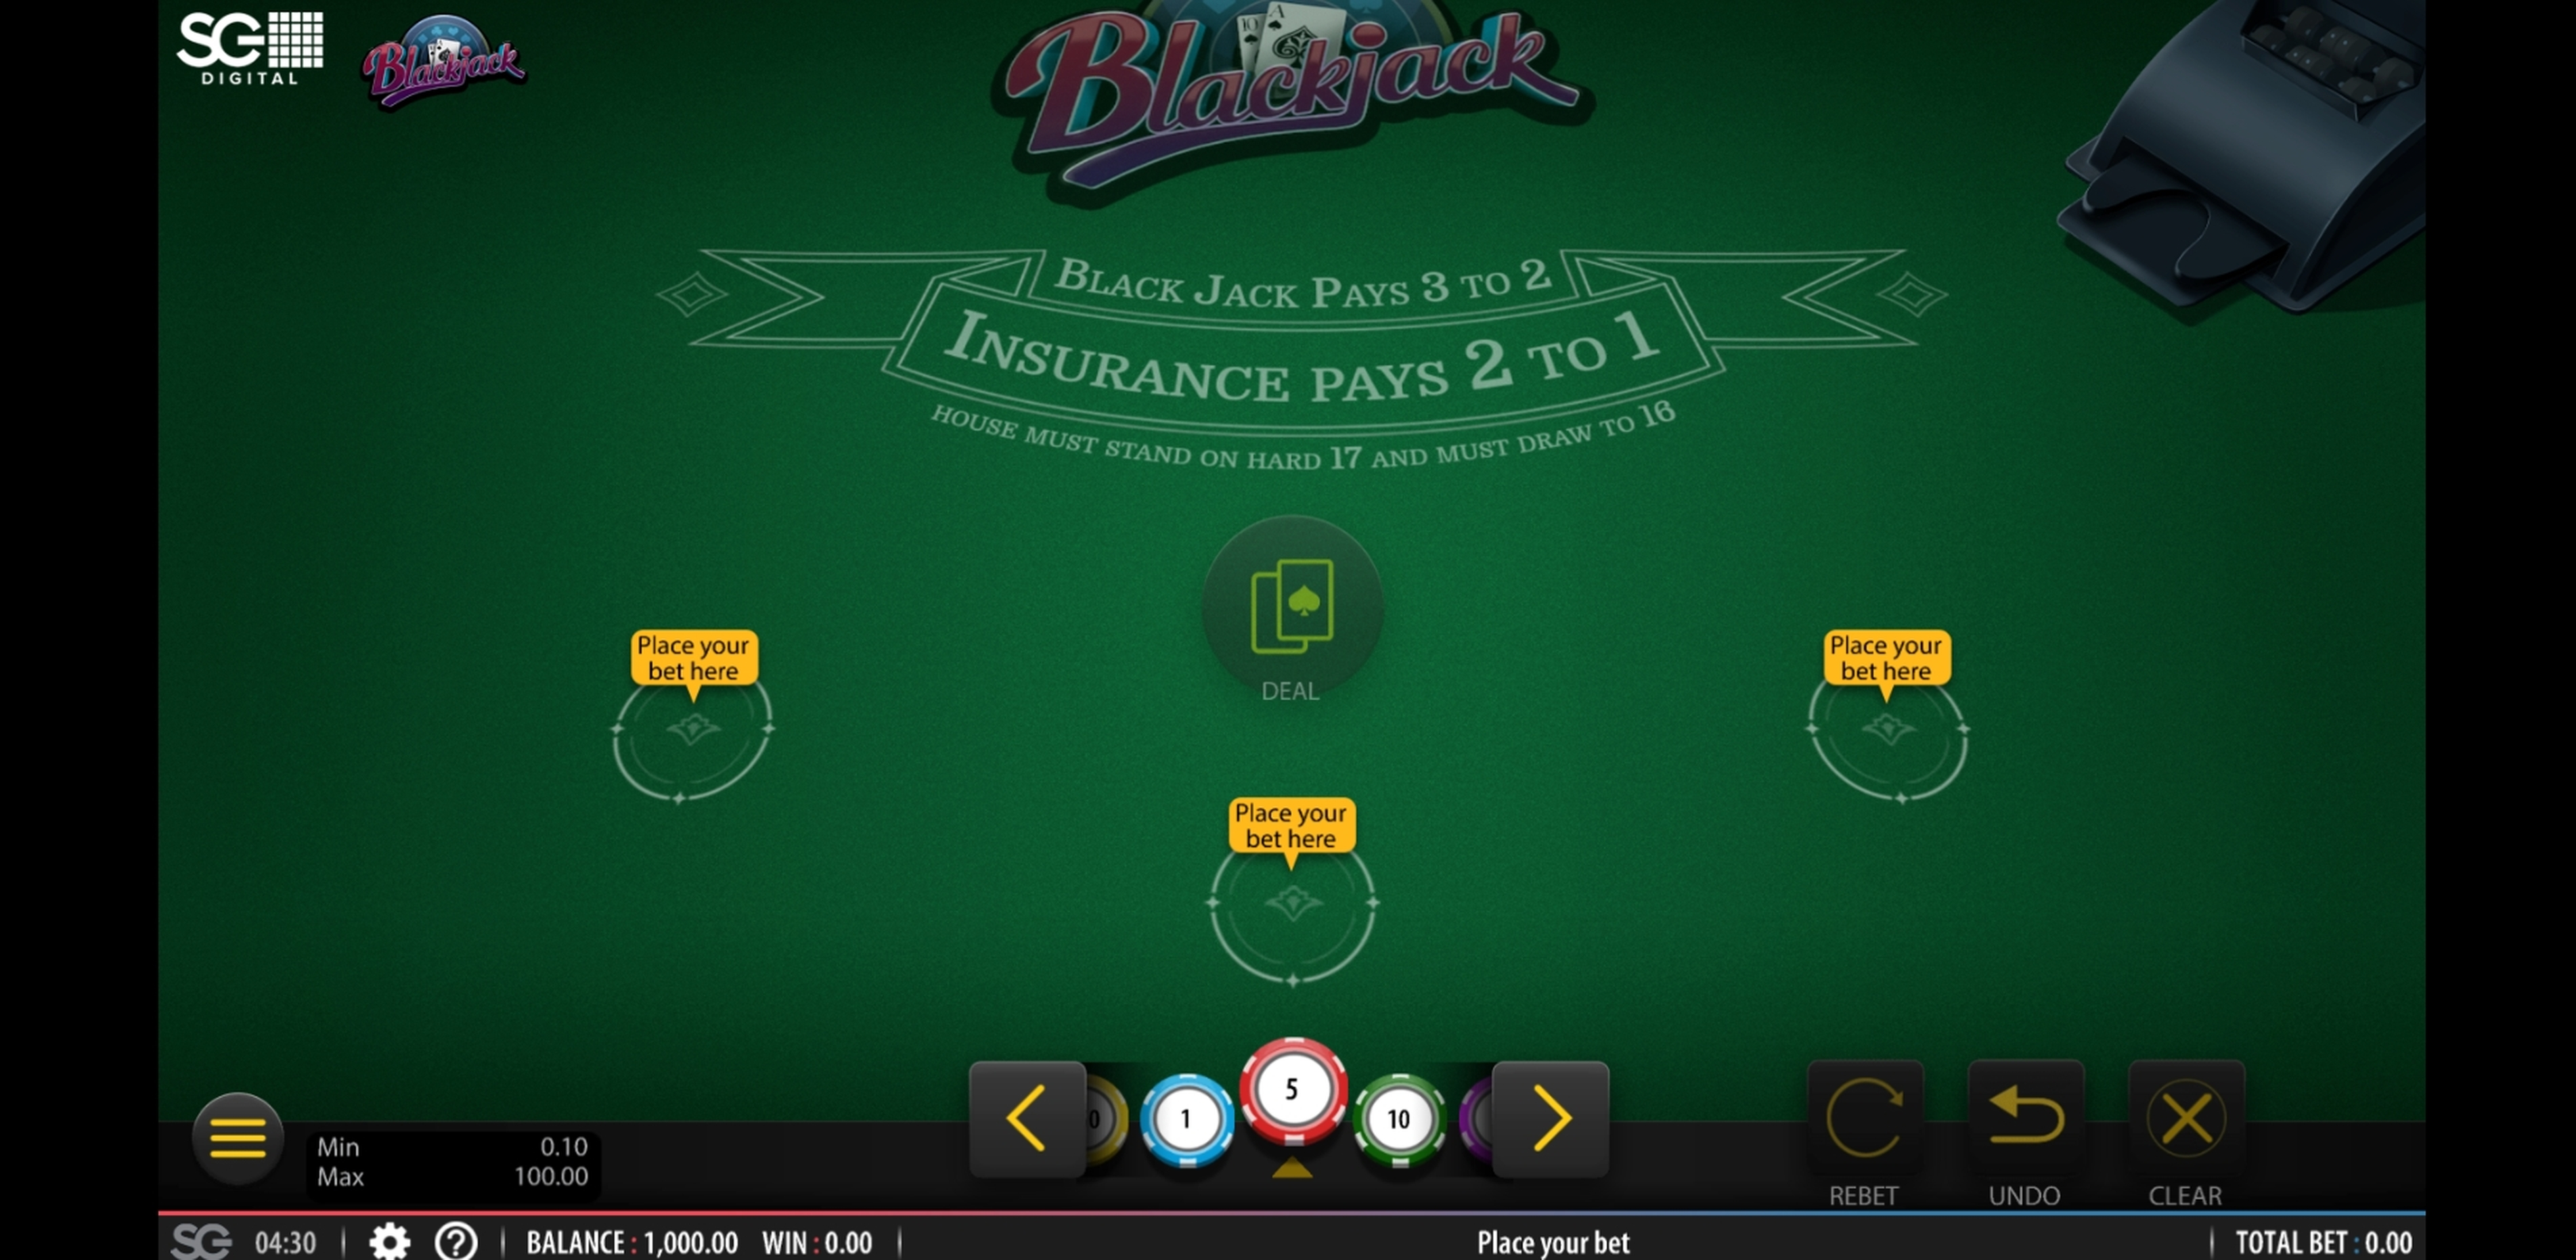 Reels in Blackjack (Shuffle Muster) Slot Game by Shuffle Master